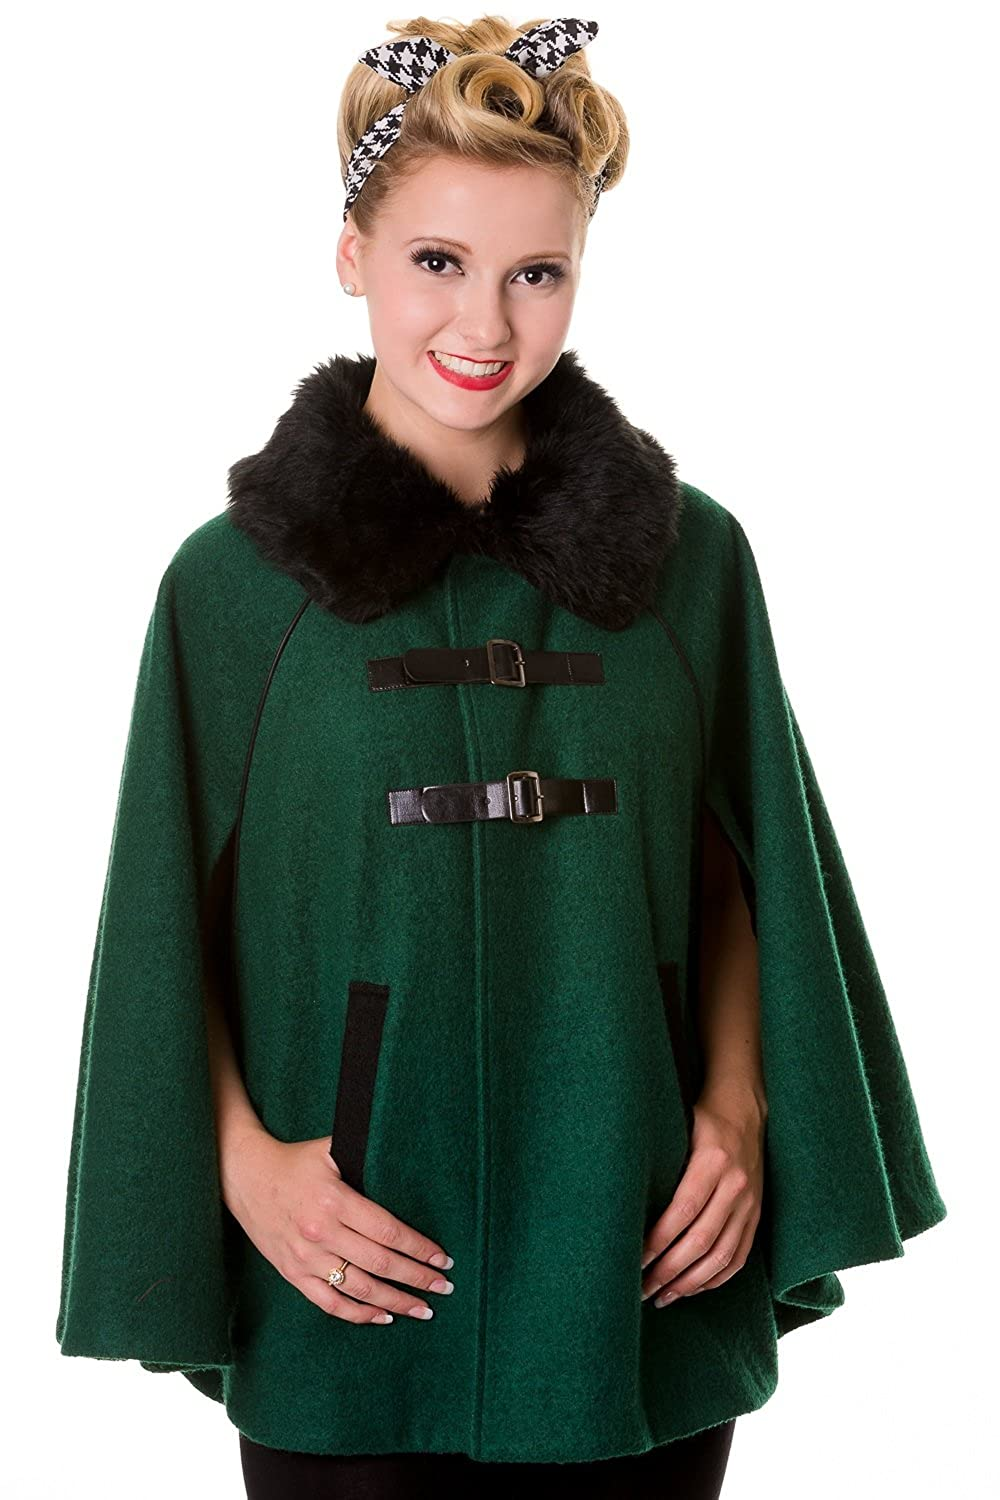 Banned Vintage Cape Coat - Green or Red